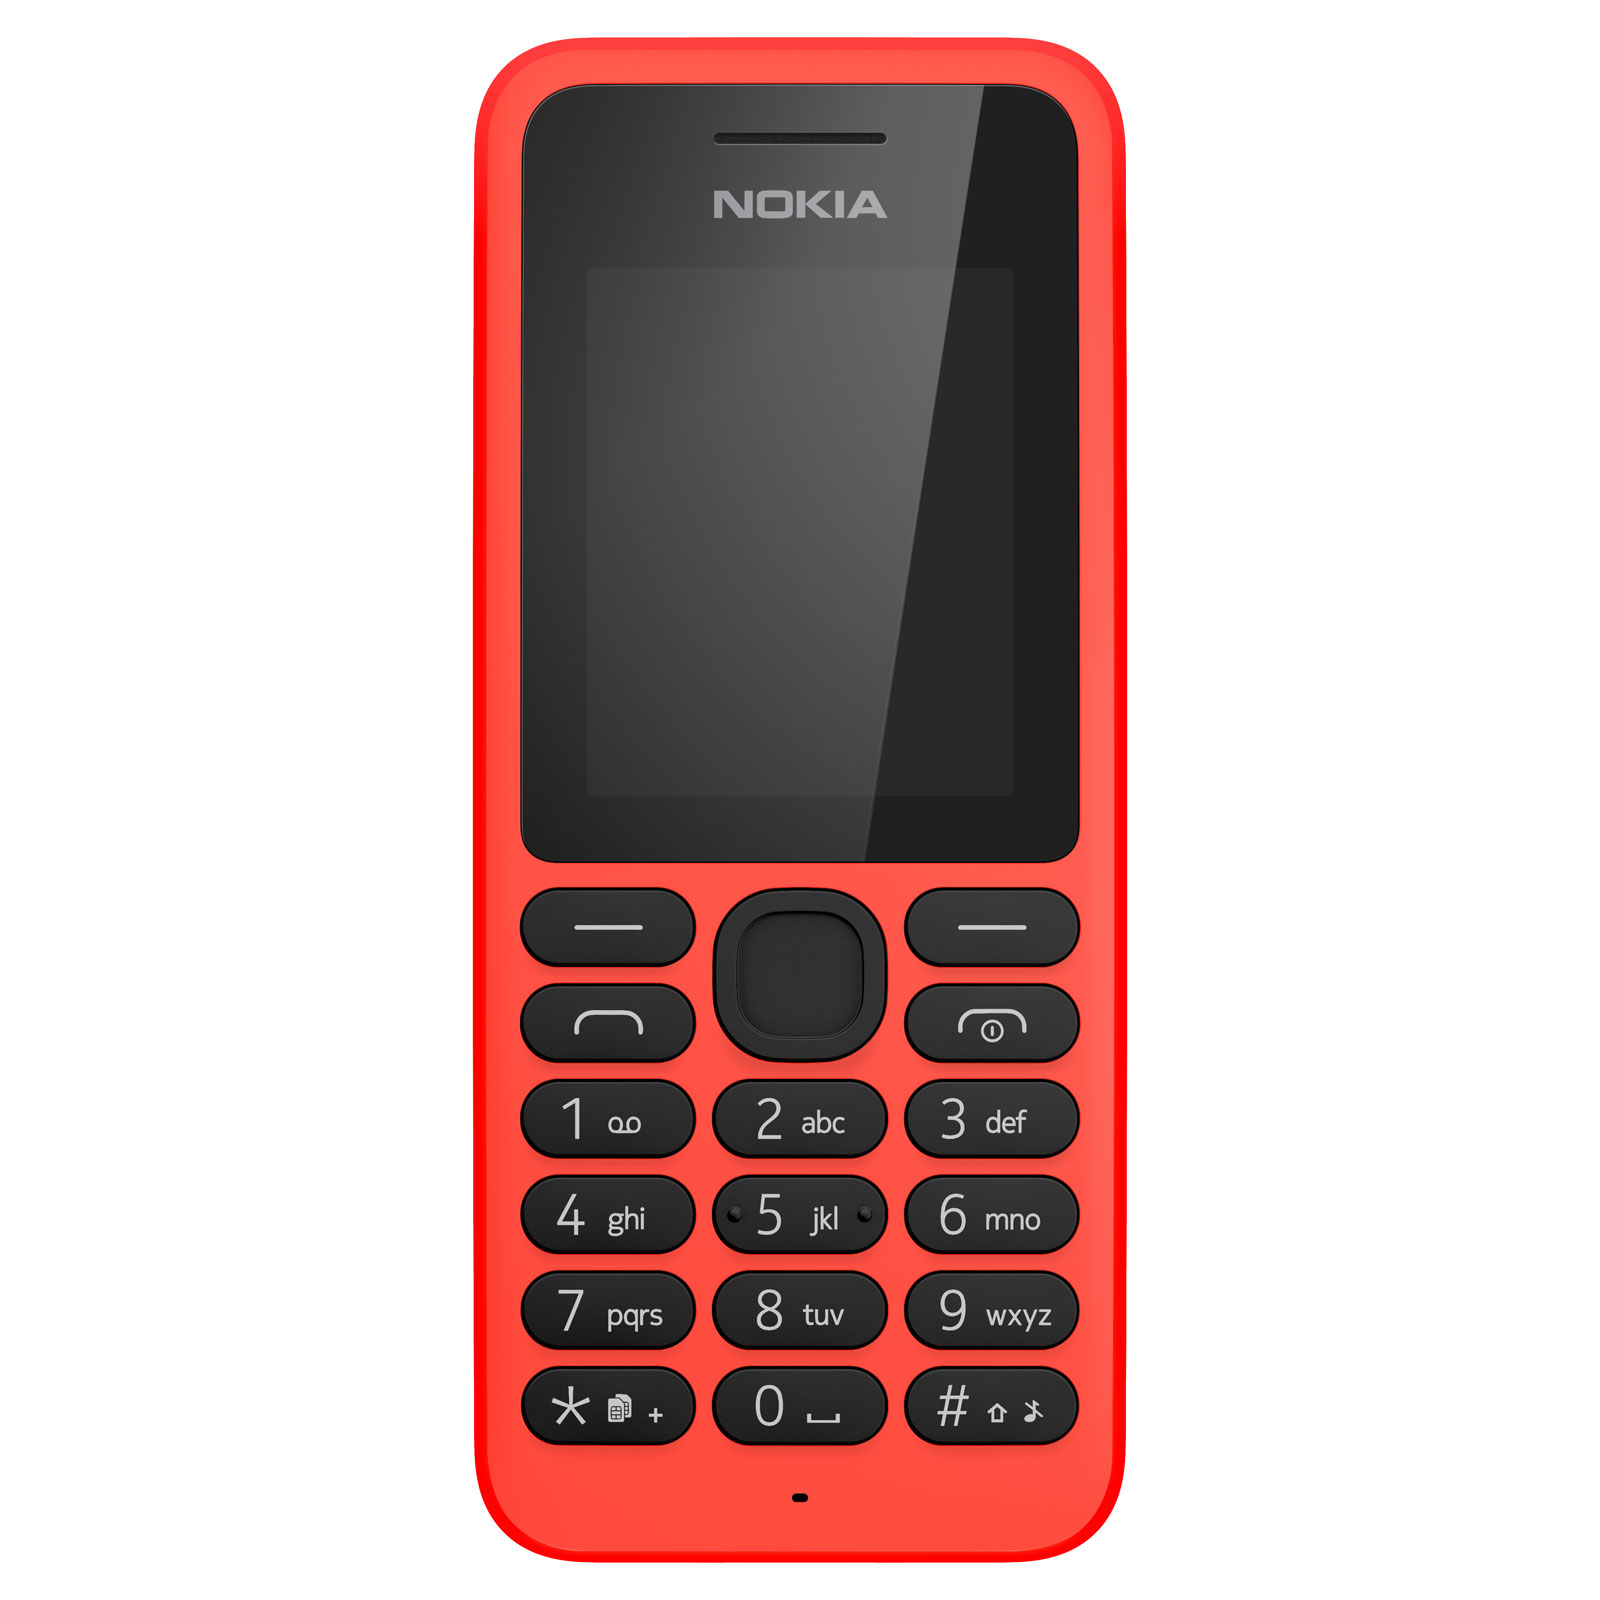 nokia 130 dual sim rouge mobile smartphone nokia sur. Black Bedroom Furniture Sets. Home Design Ideas